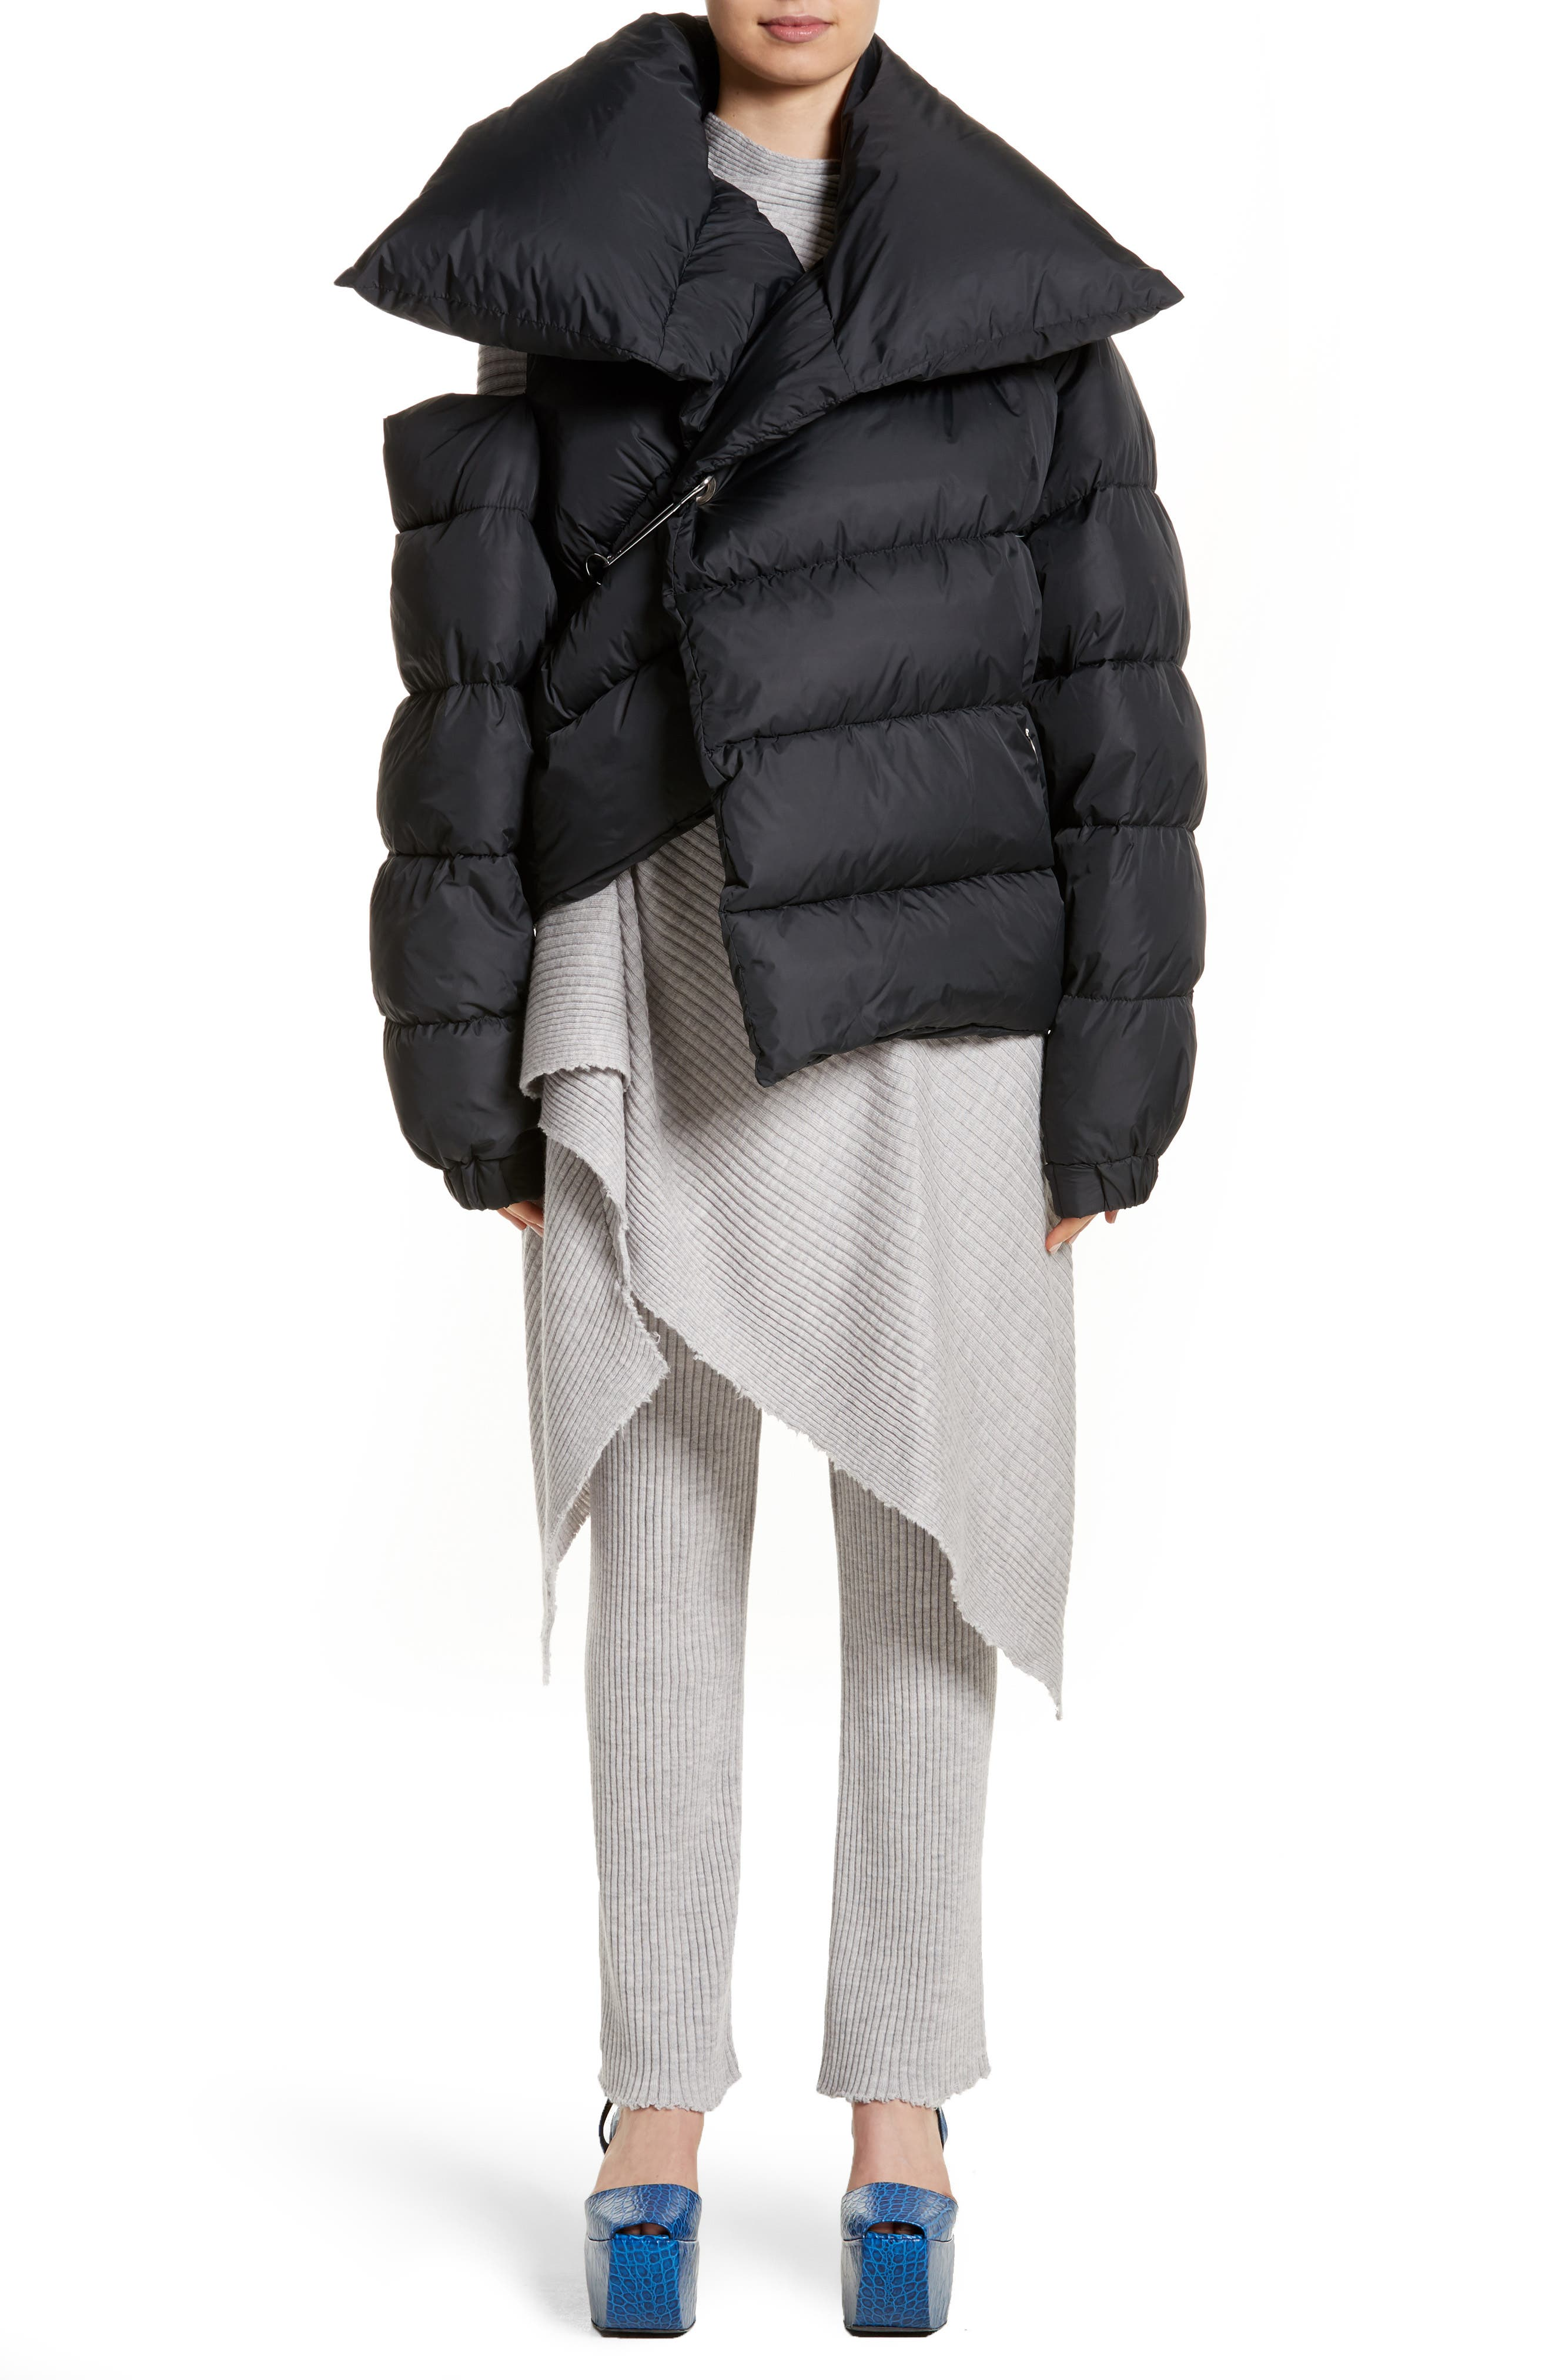 Alternate Image 1 Selected - Marques'Almeida Asymmetrical Down Puffer Coat with Safety Pin Closure